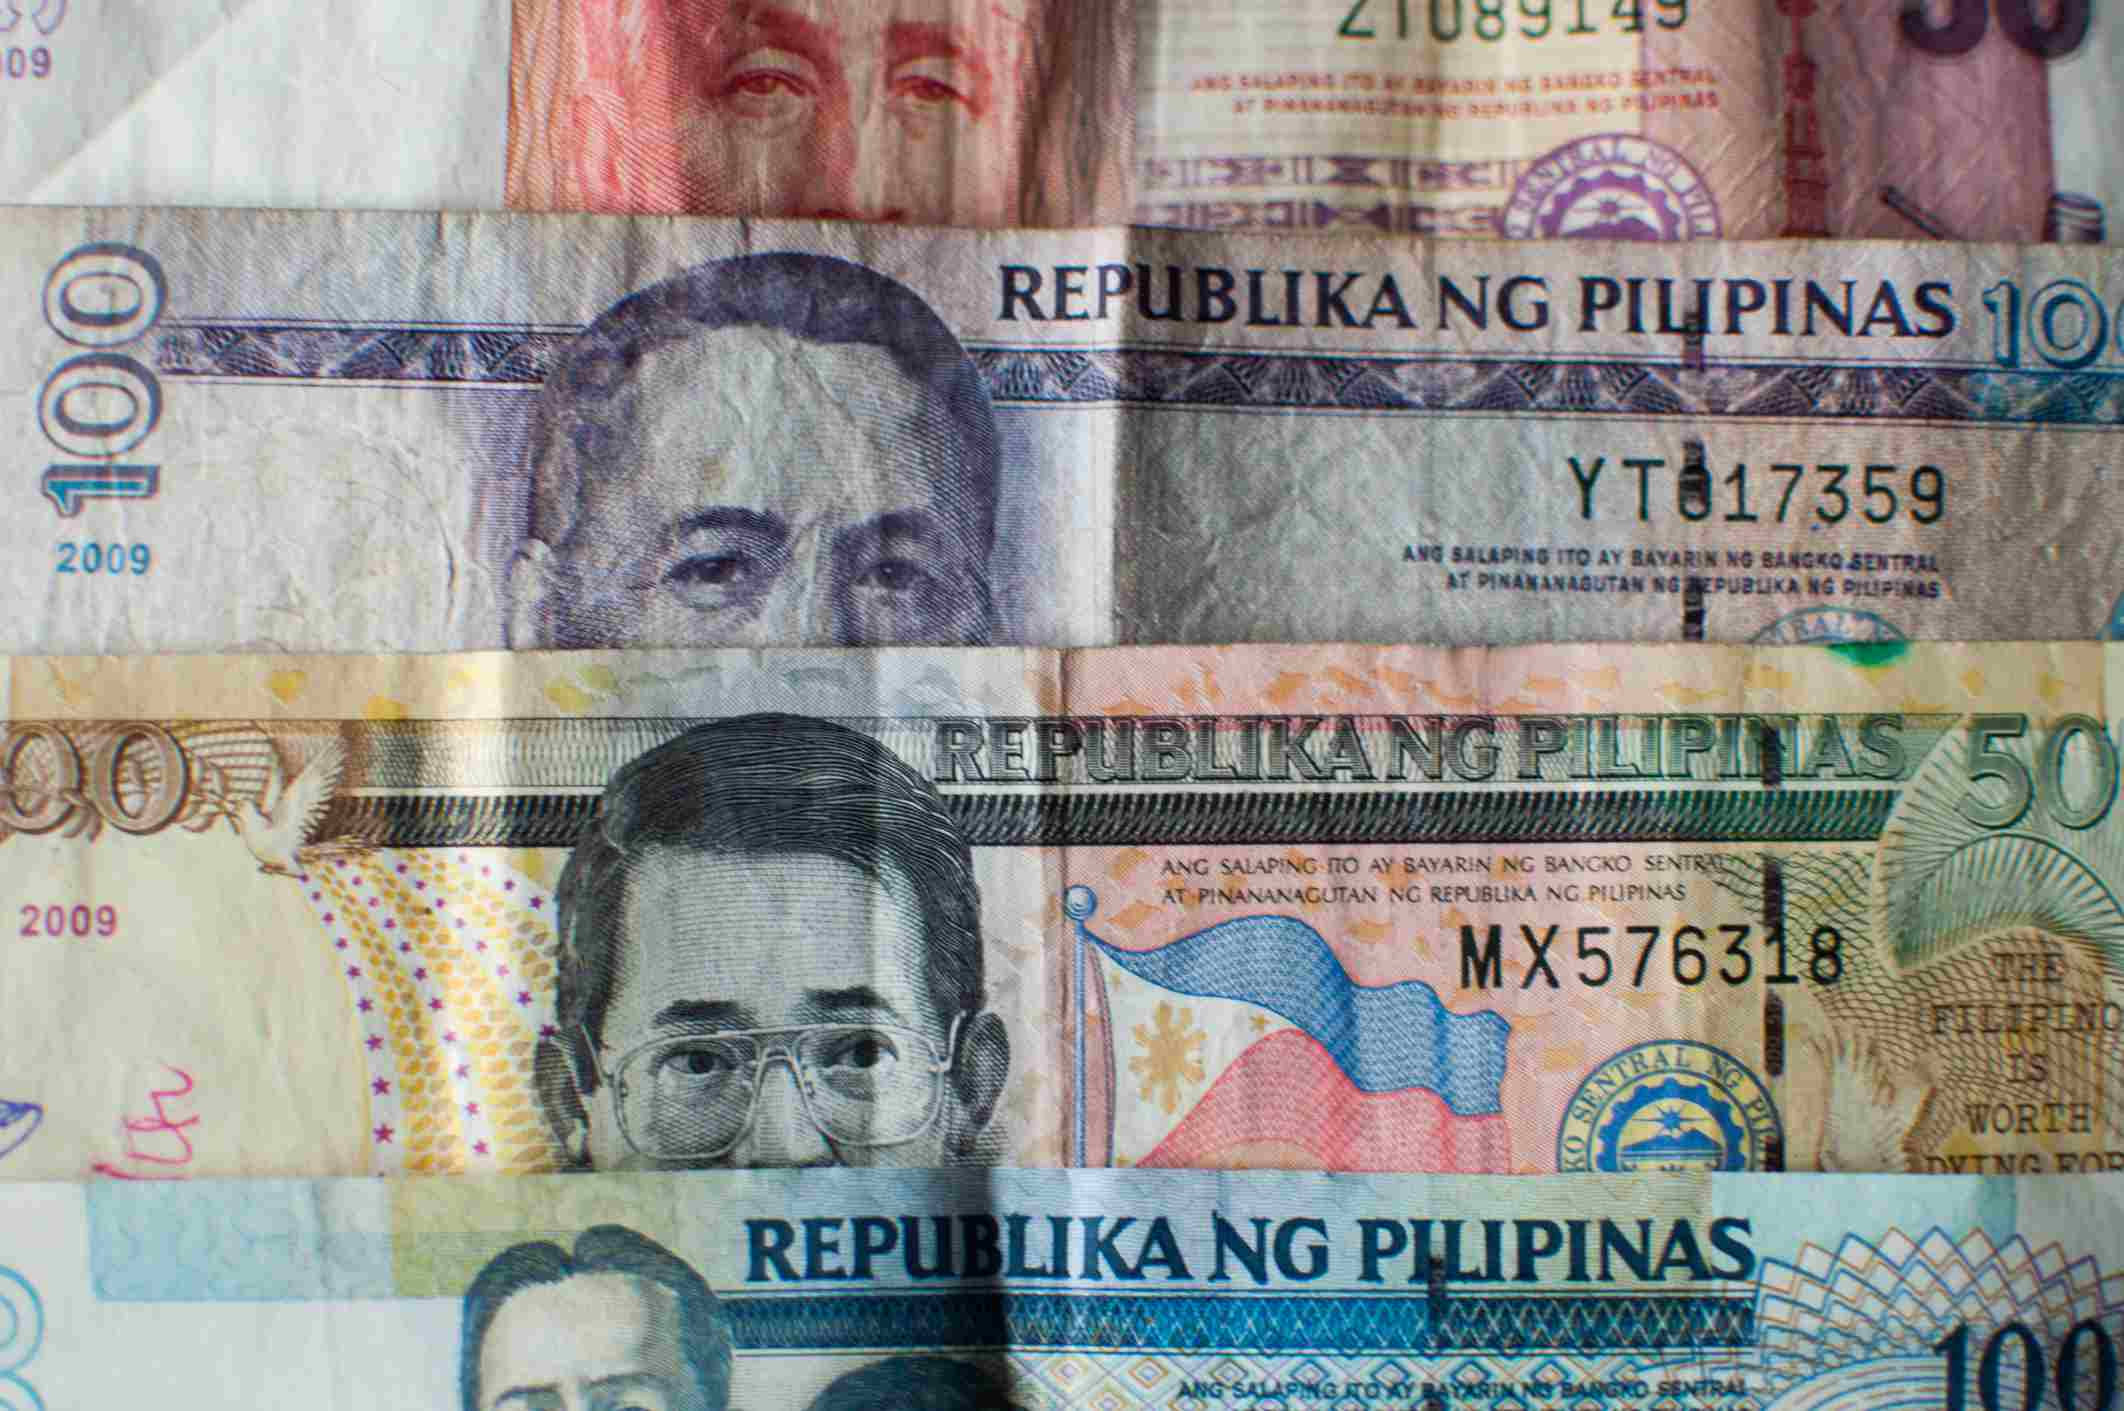 Philippine peso bills currency